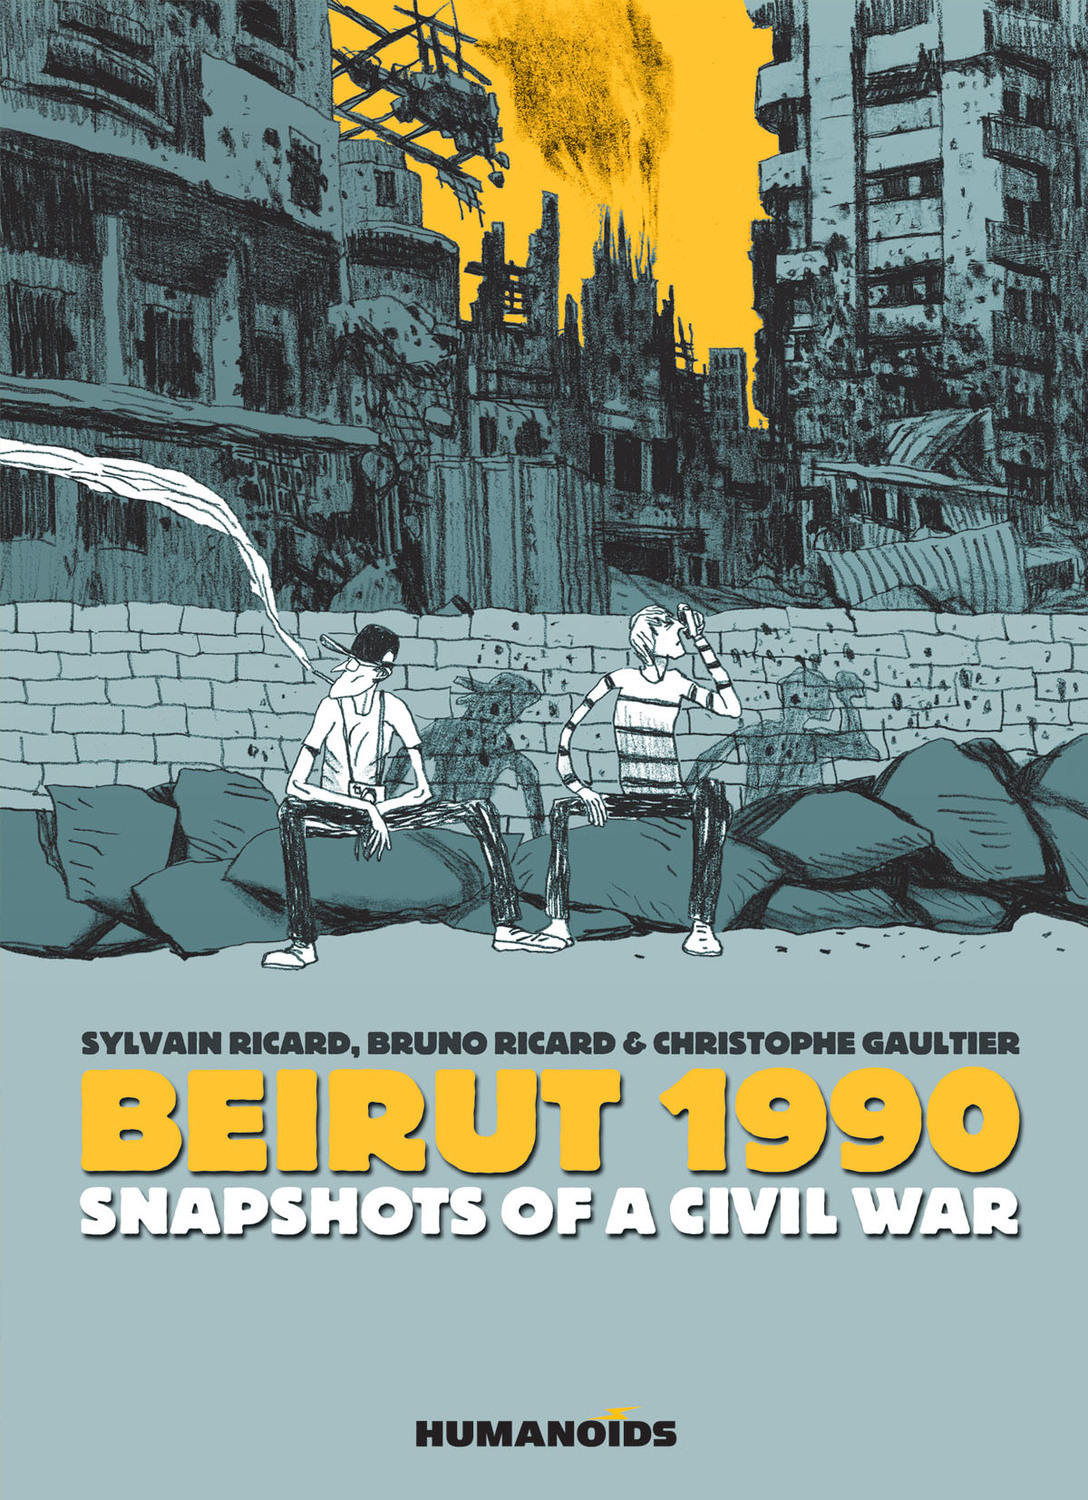 Beirut 1990 - Snapshots of a Civil War - Hardcover Trade